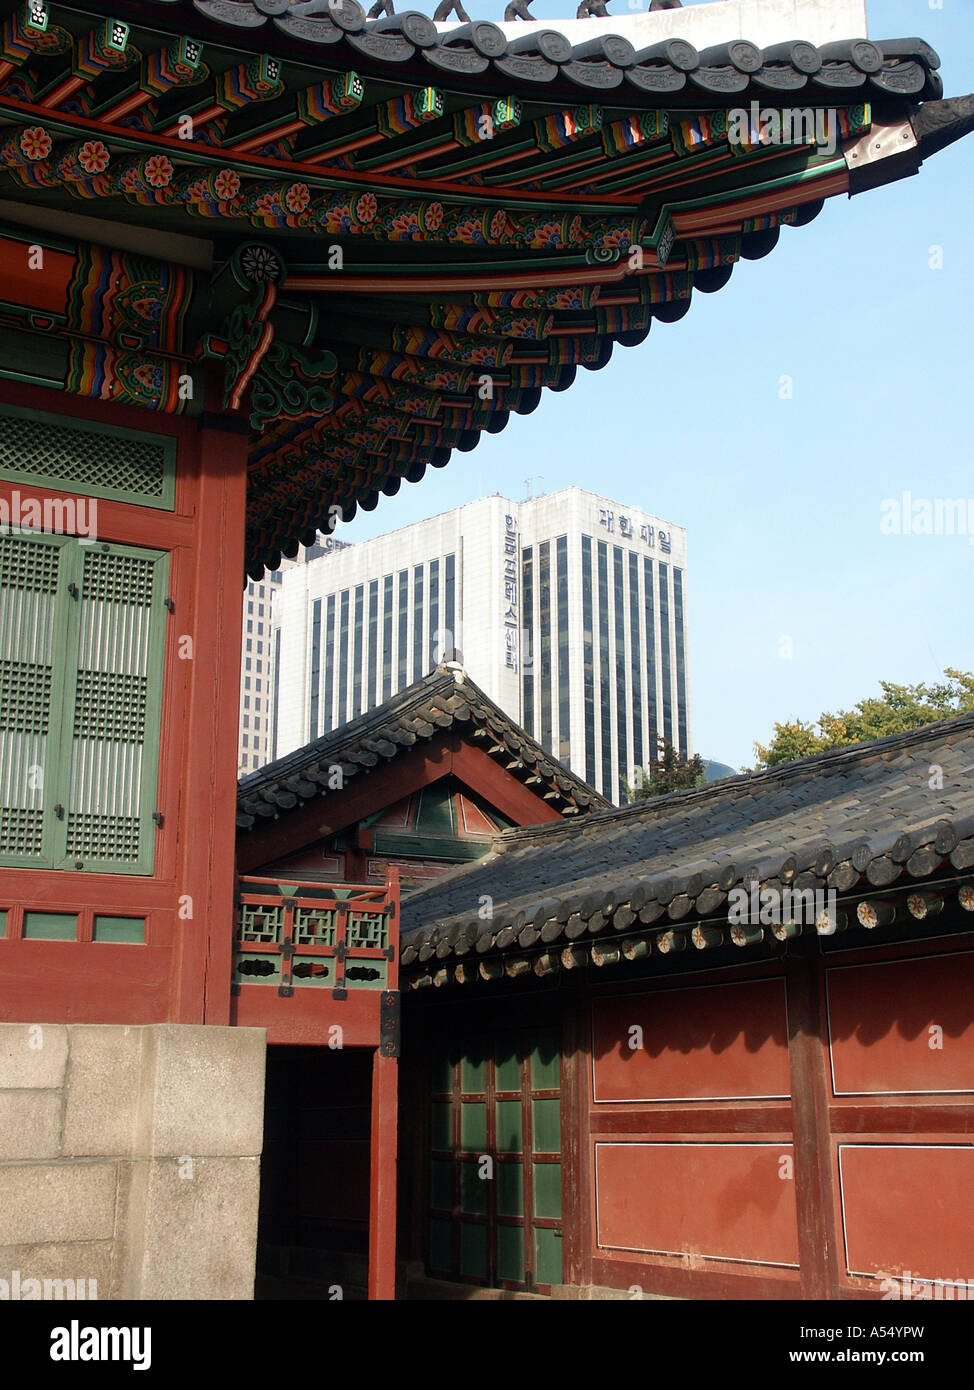 Painet ip2232 korea royal palace seoul country developing nation less economically developed culture emerging market - Stock Image